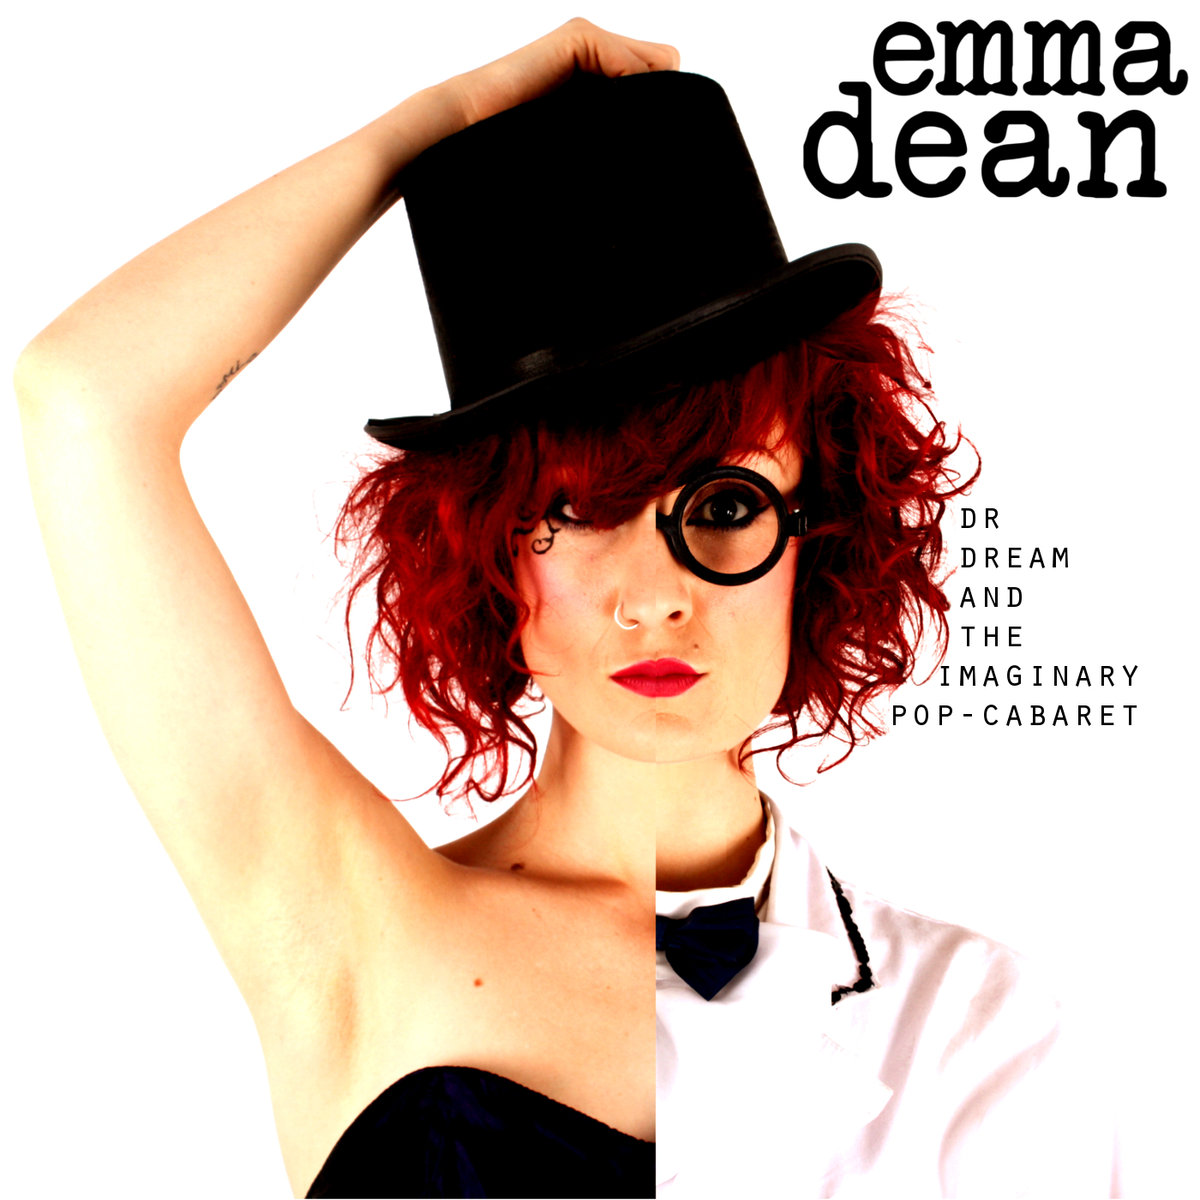 Source: https://emmadean.bandcamp.com/album/dr-dream-and-the-imaginary-pop-cabaret